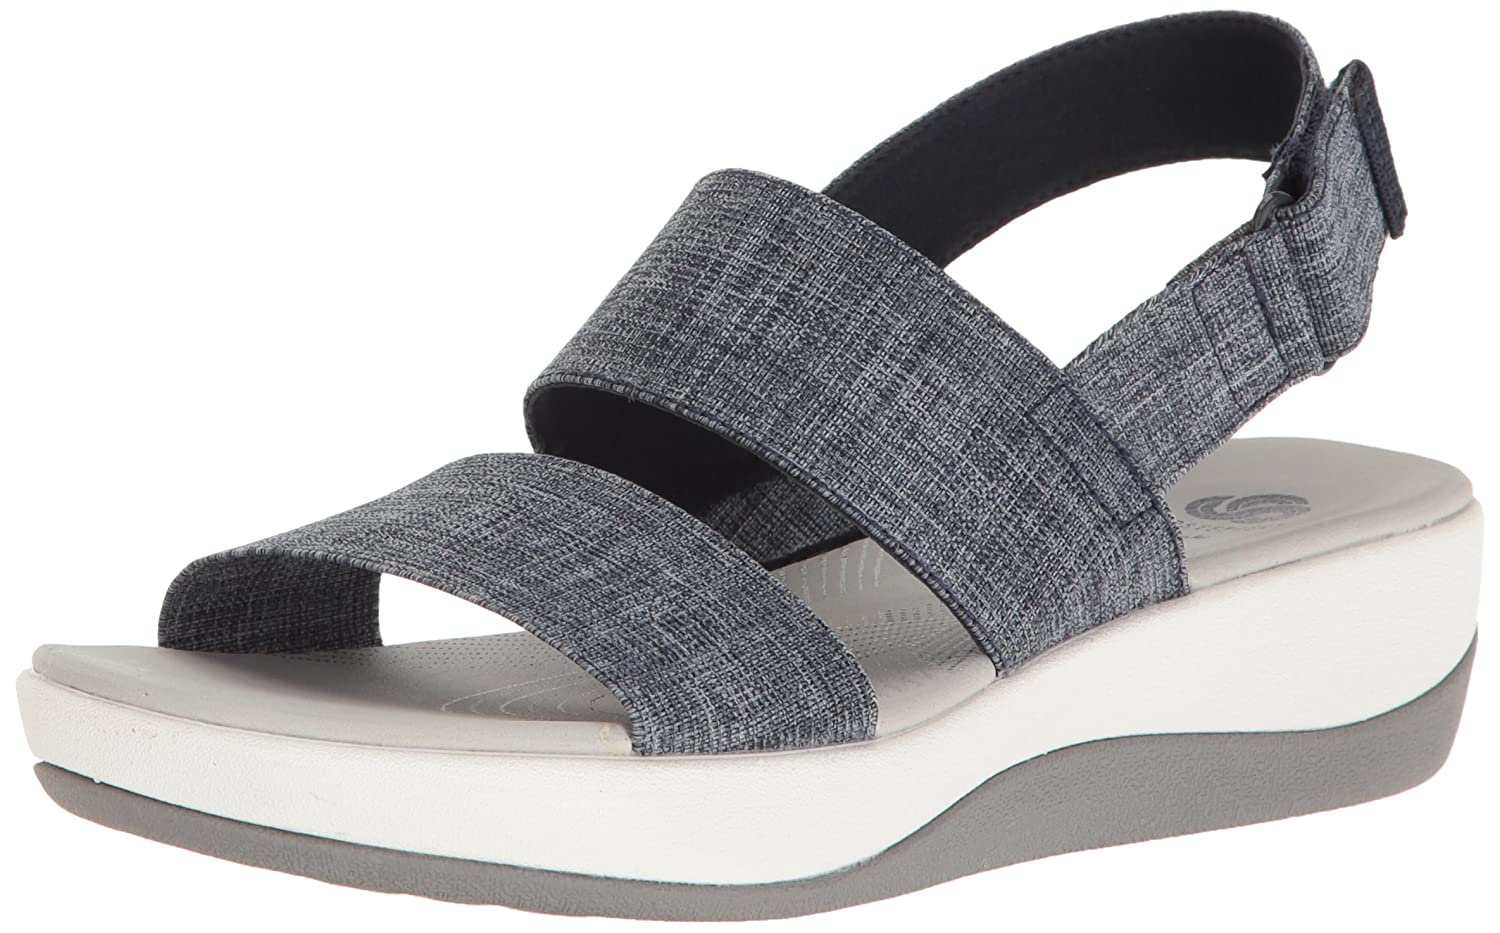 Clarks Women's Arla Jacory Sandals